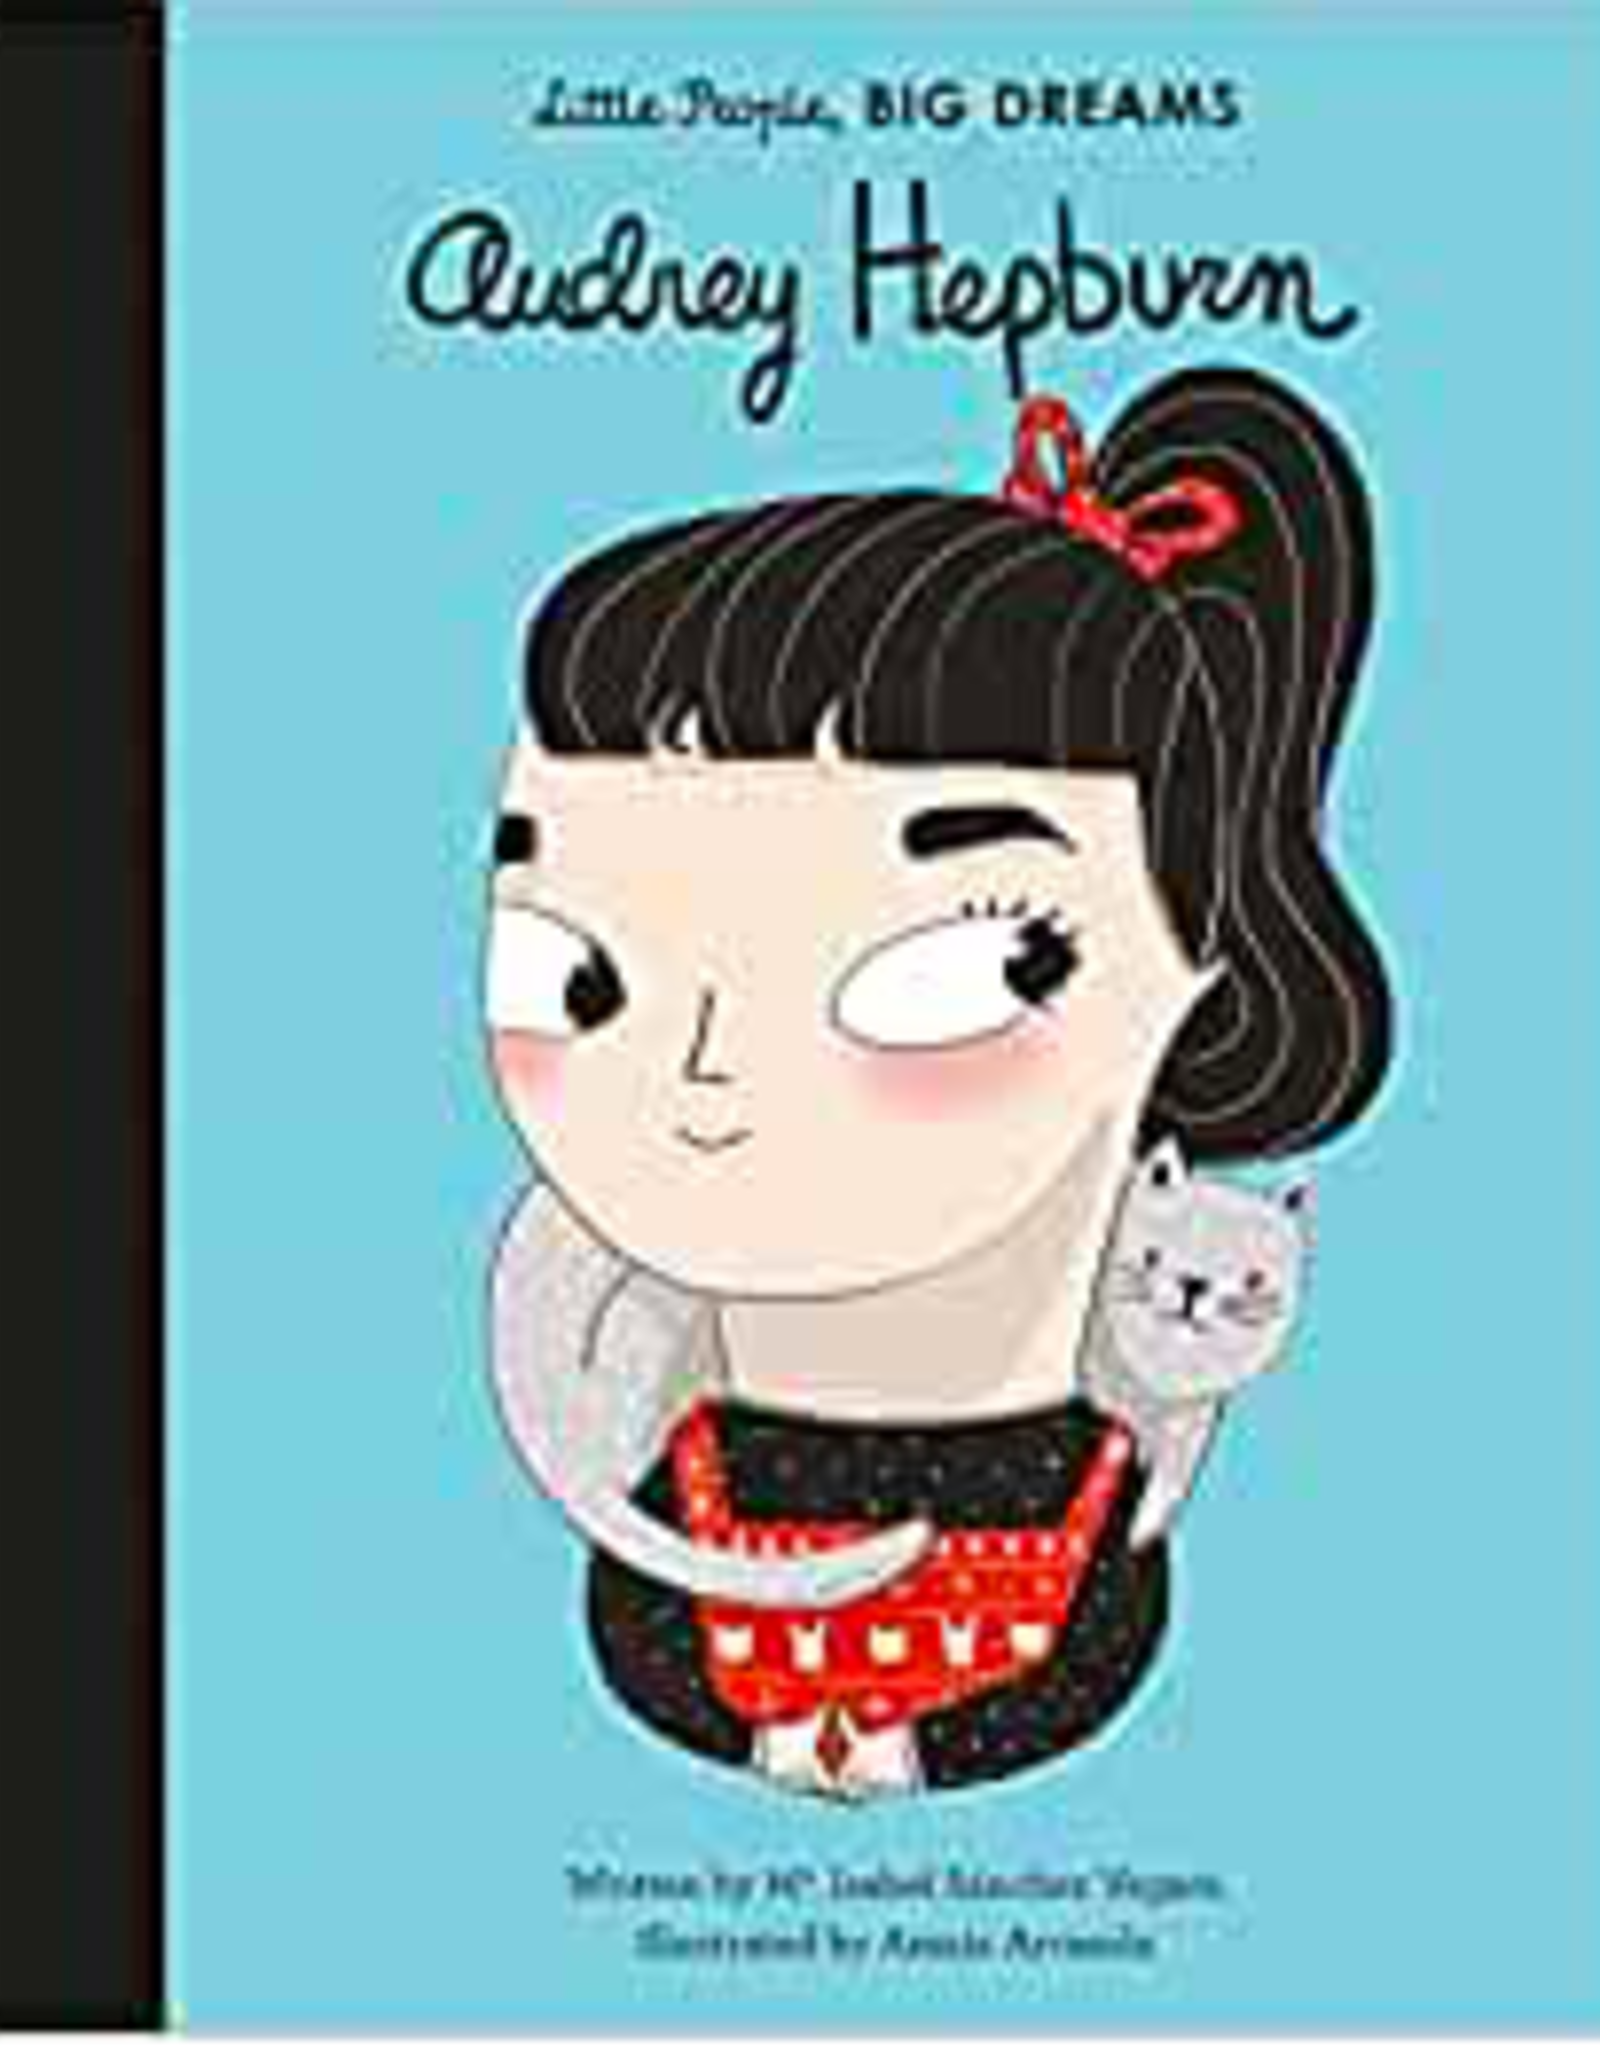 Harper Little People, Big Dreams - Audrey Hepburn